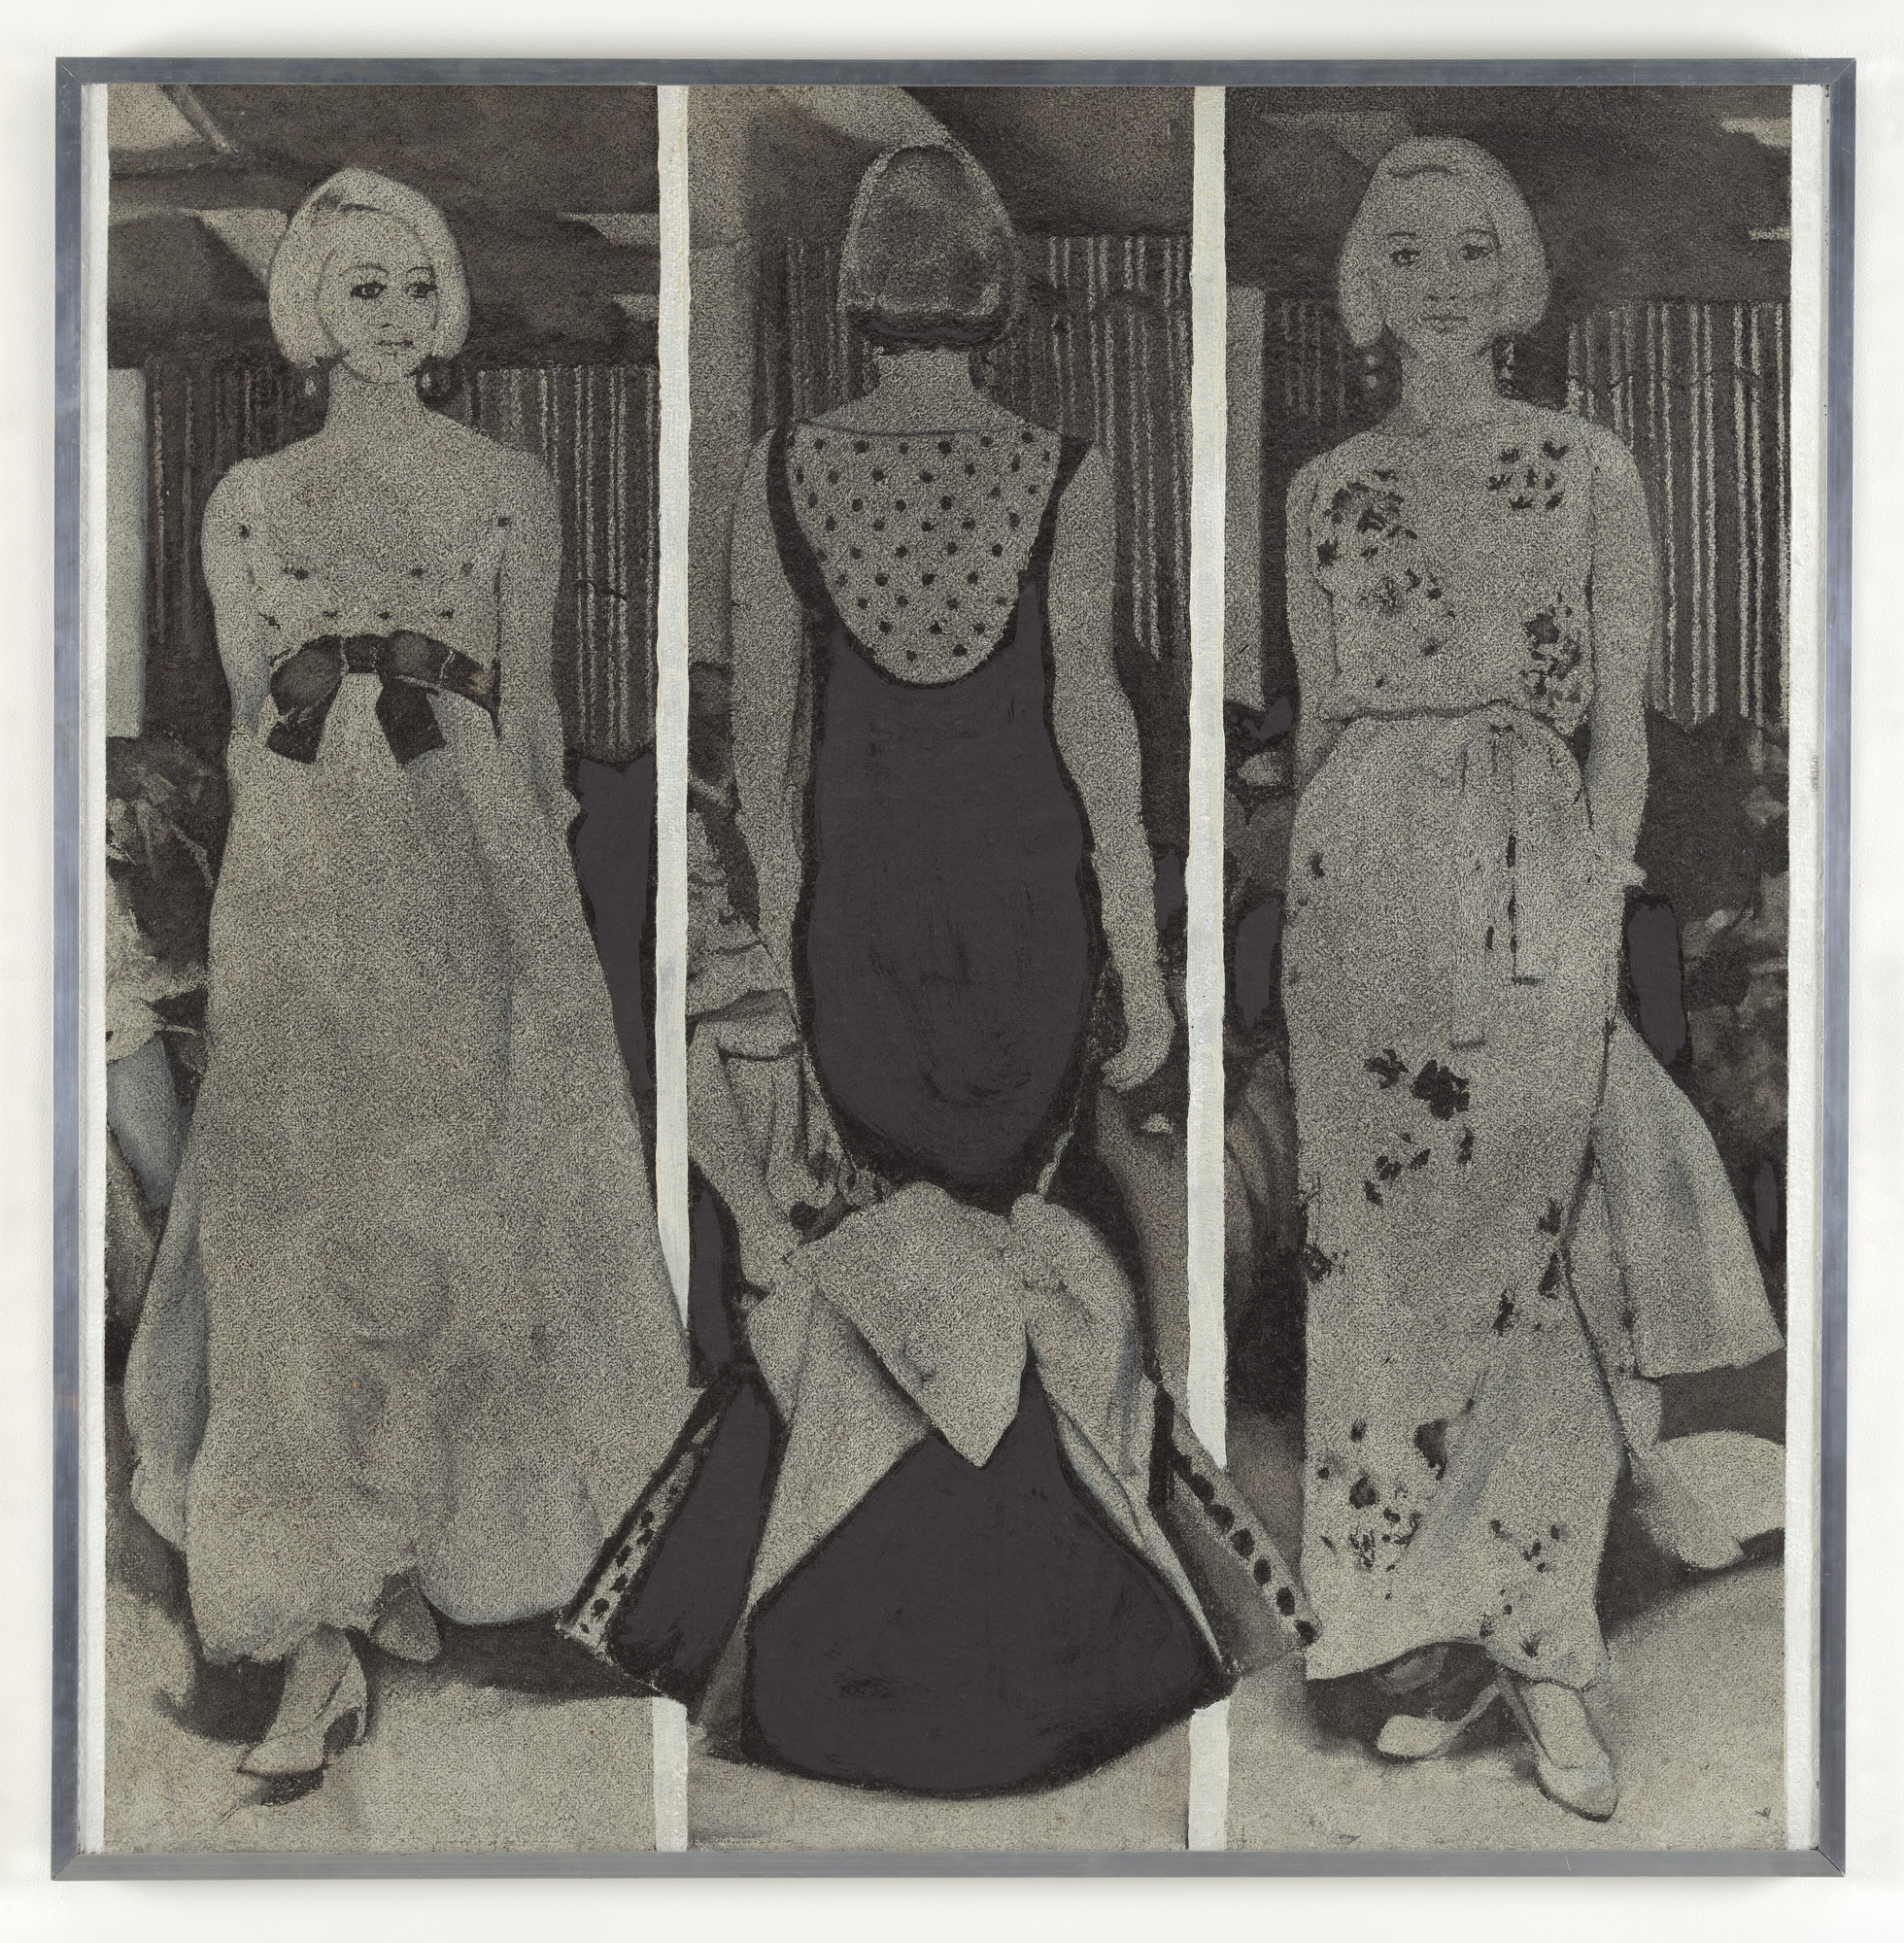 Richard Artschwager. Three Women. 1963